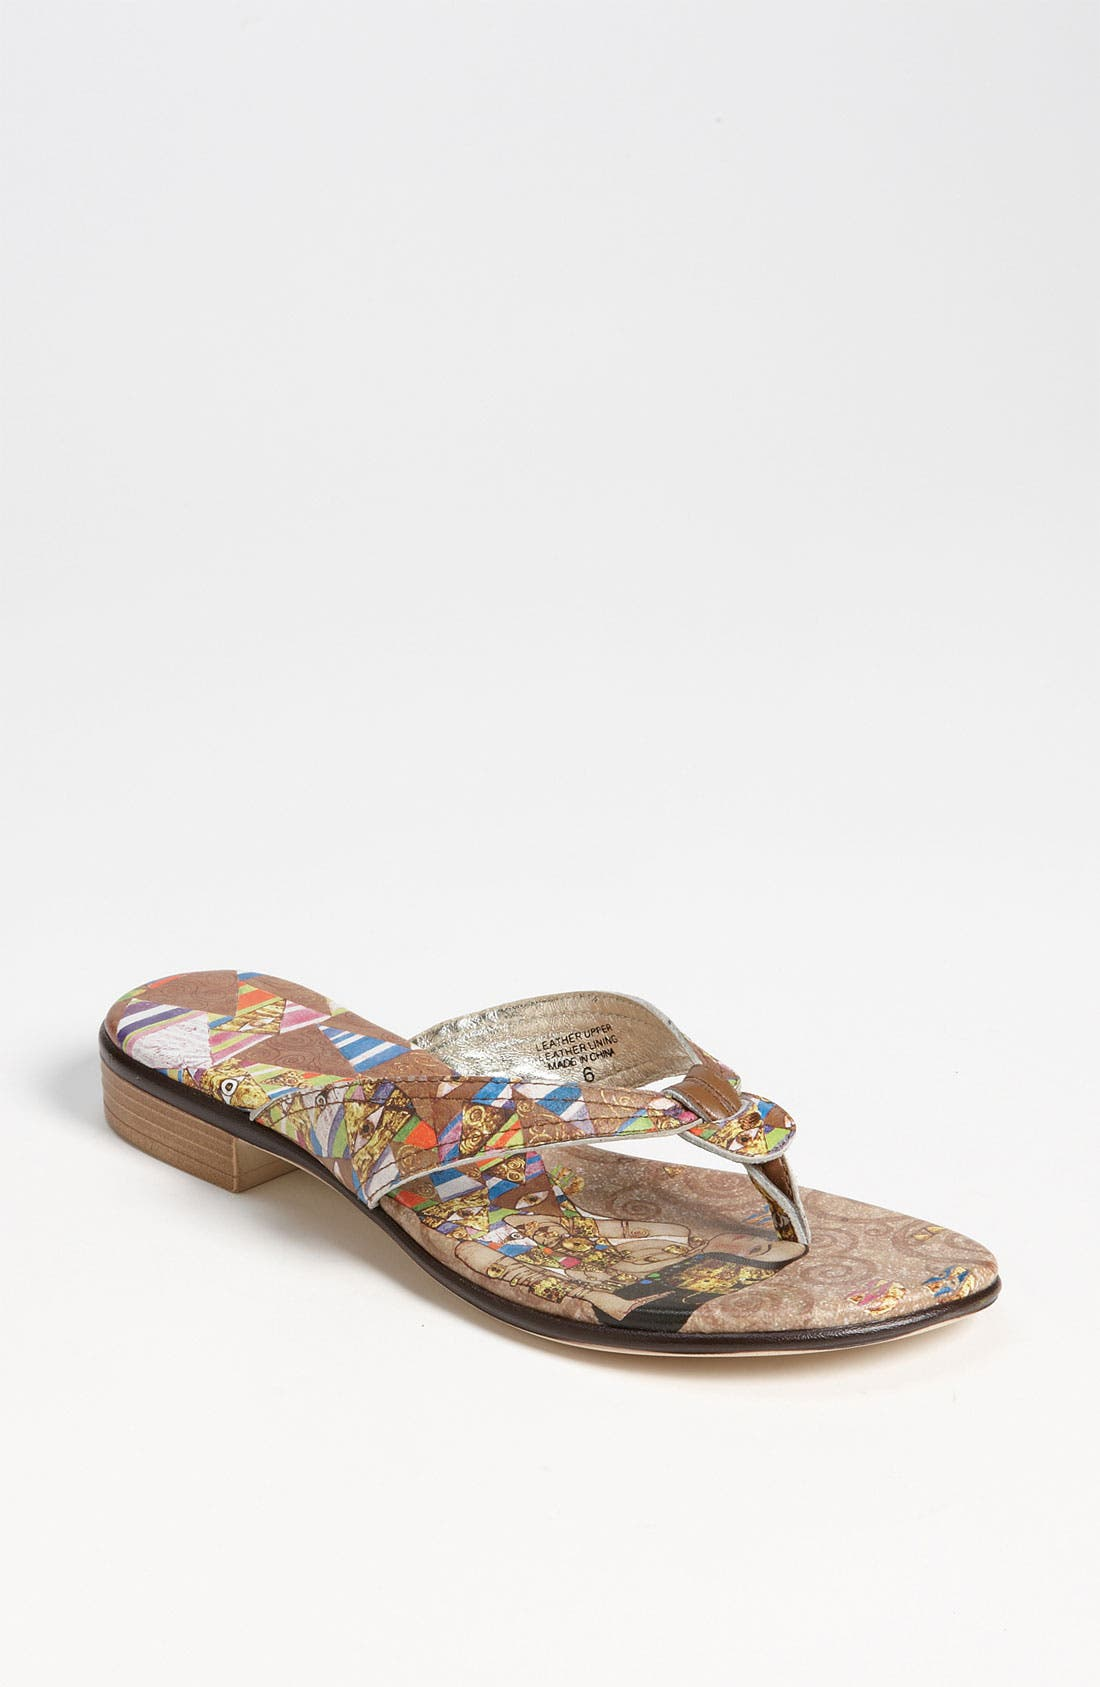 Alternate Image 1 Selected - Icon 'Jada 23' Sandal